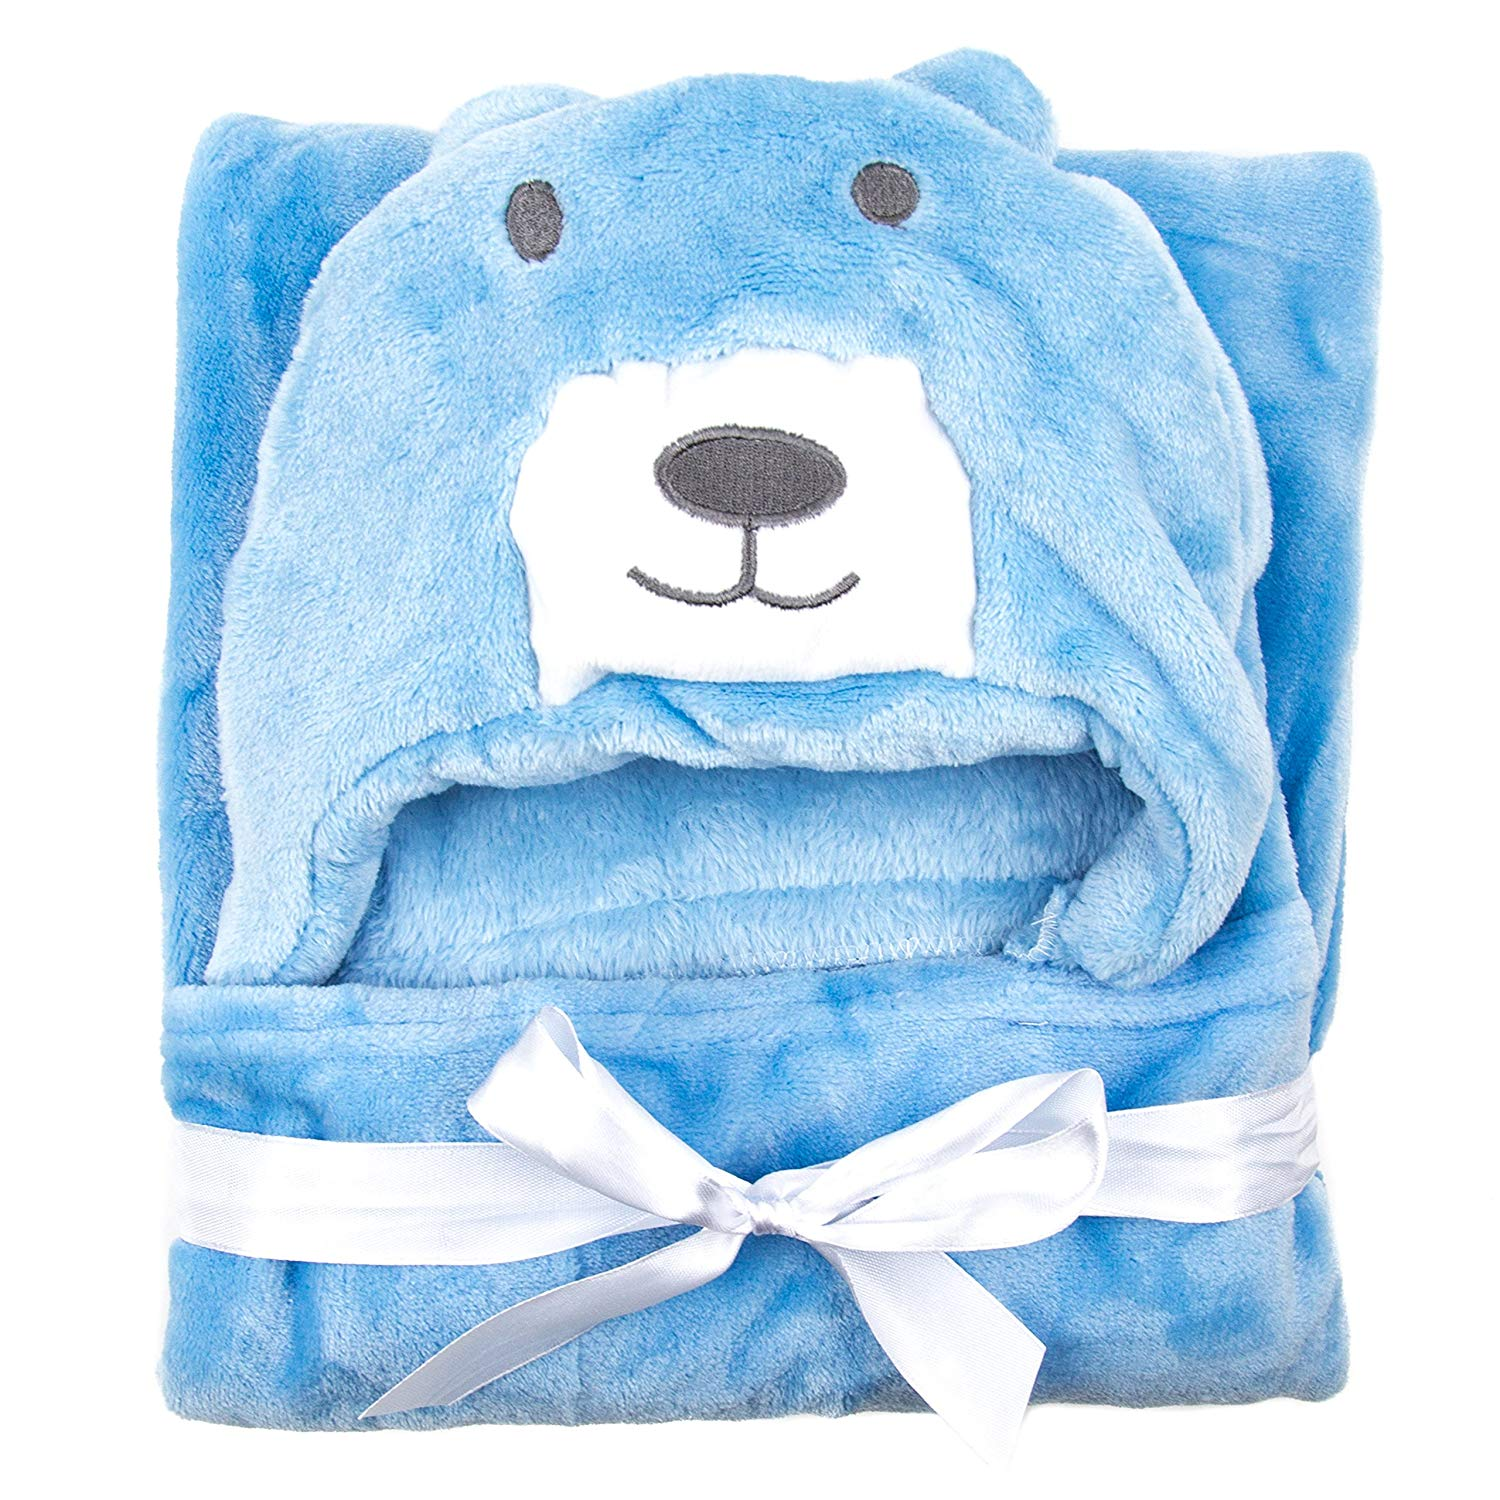 """Super Soft Baby Animal Hooded Blanket / Premium Hooded Baby Blanket / 100% ORGANIC Fleece/Perfect Baby Shower Gift/ 35x35"""" for Newborns Infants Toddlers & Kids/for Boys and Girls/Better than C (Blue)"""